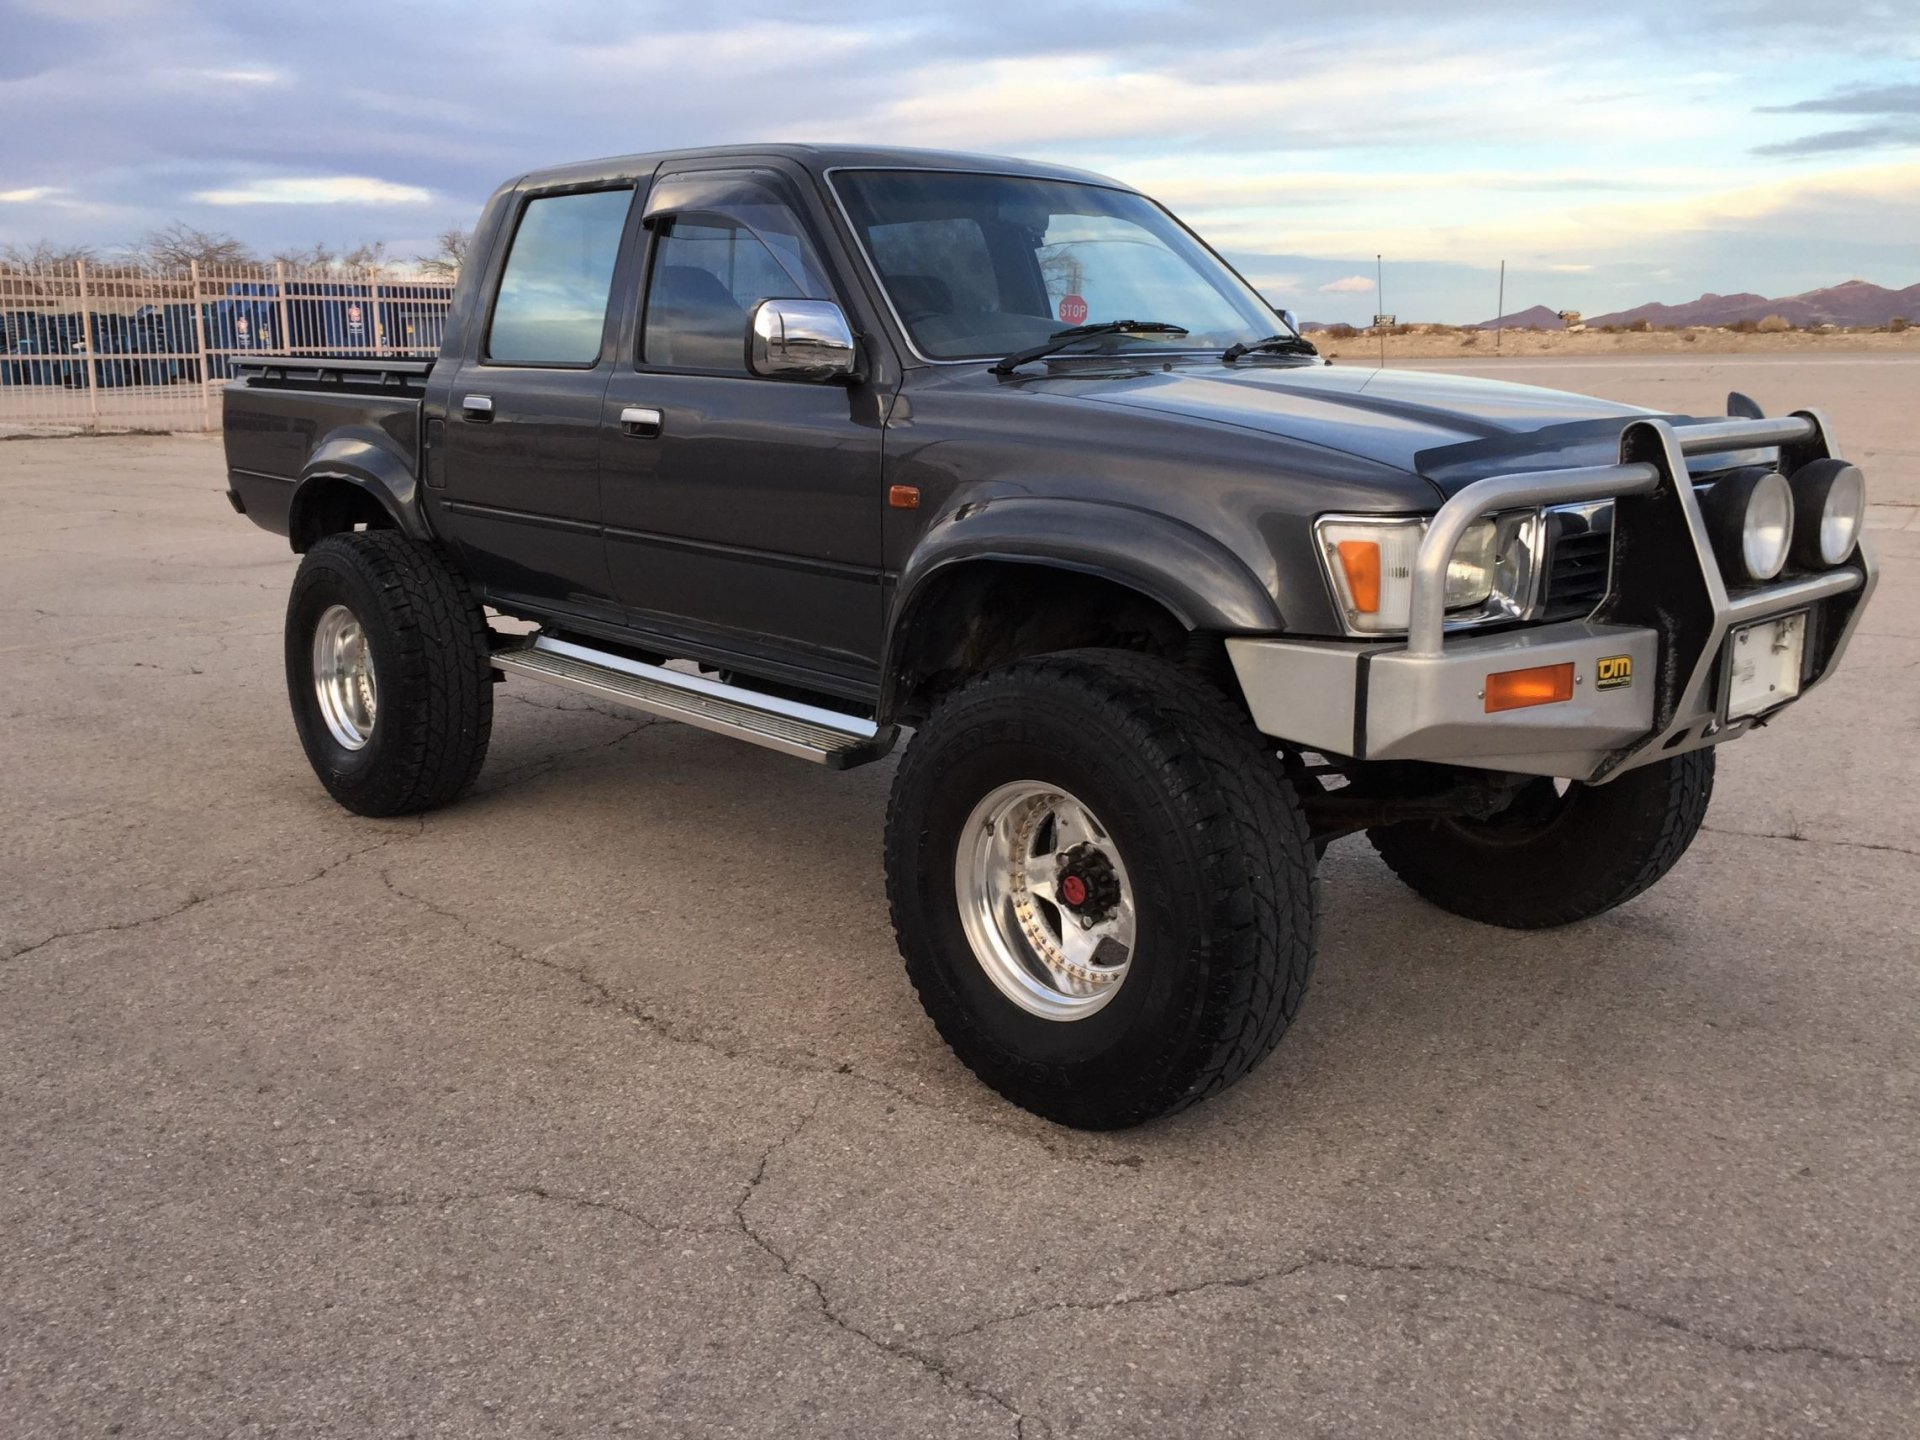 for sale 1991 toyota 4x4 diesel hilux truck right hand. Black Bedroom Furniture Sets. Home Design Ideas